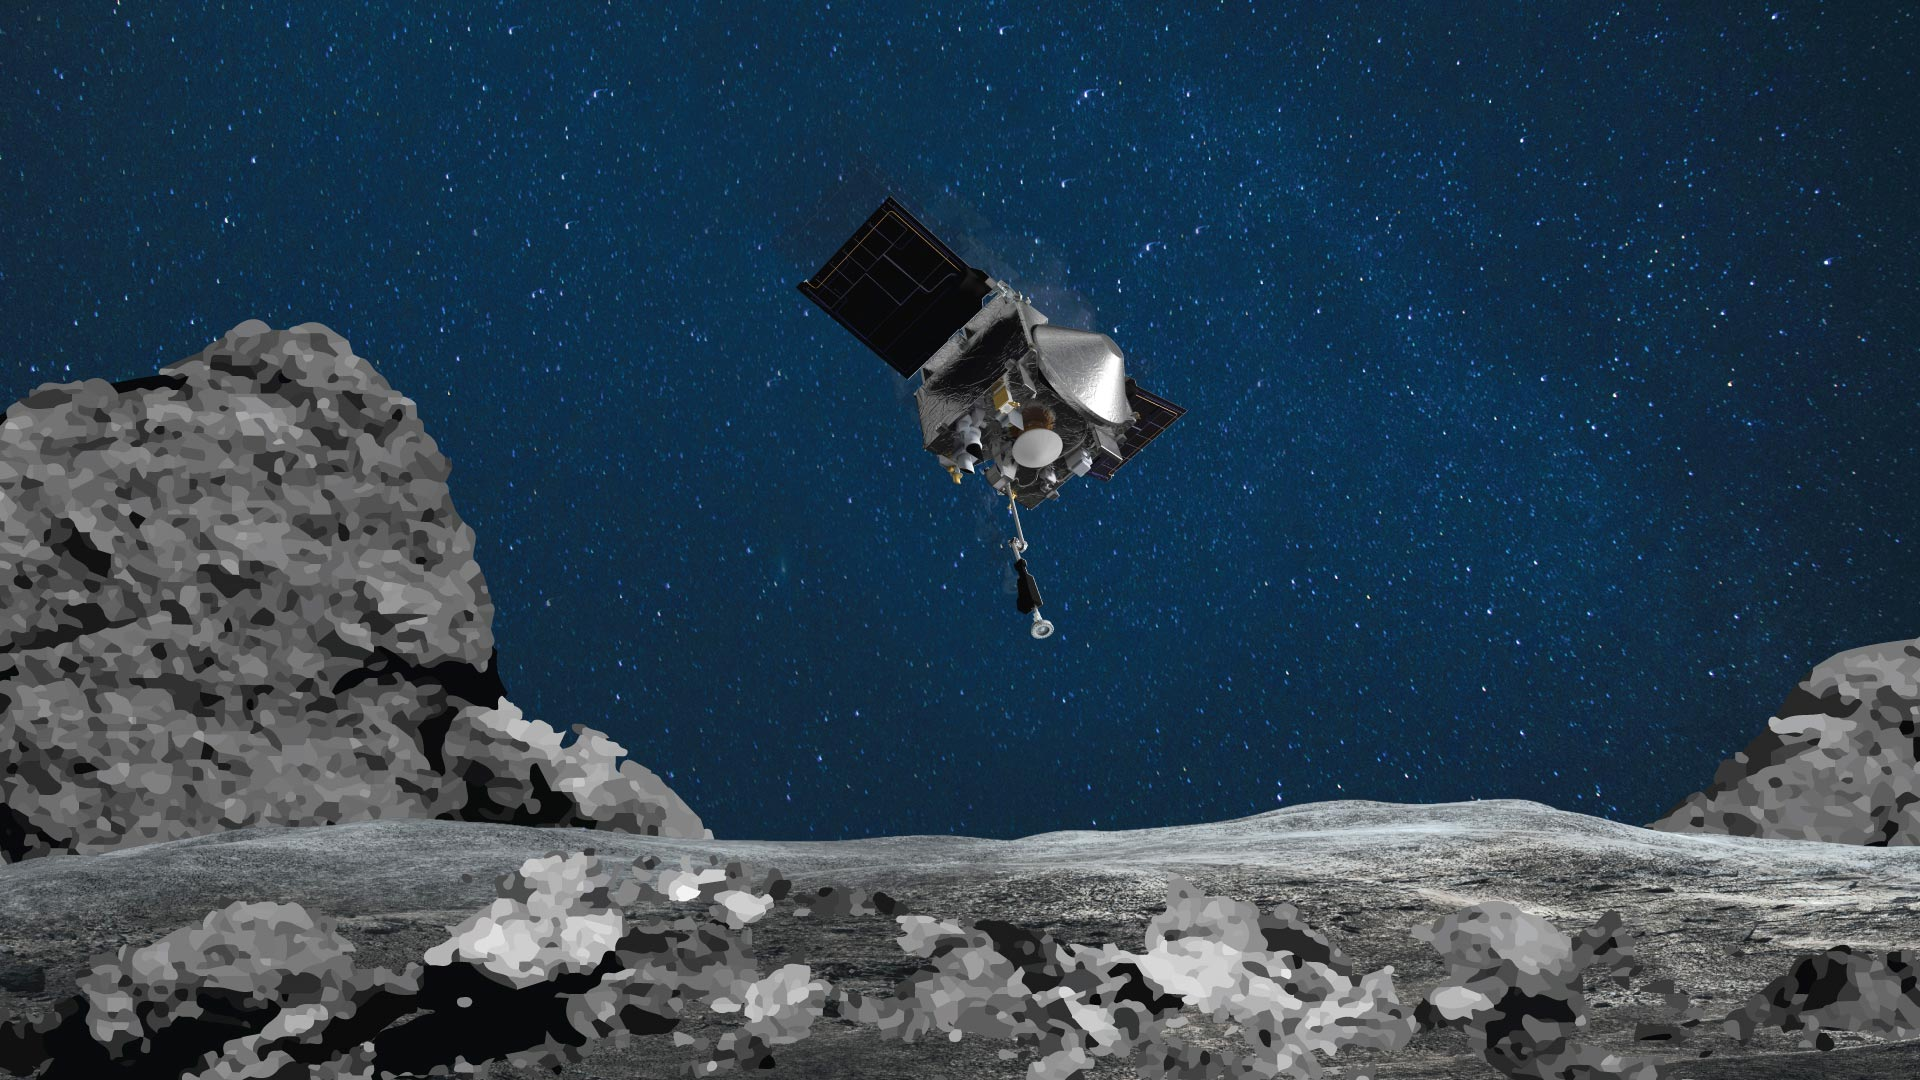 NASA�s OSIRIS-REx Spacecraft Officially Ready for Touchdown on Asteroid Bennu - SciTechDaily